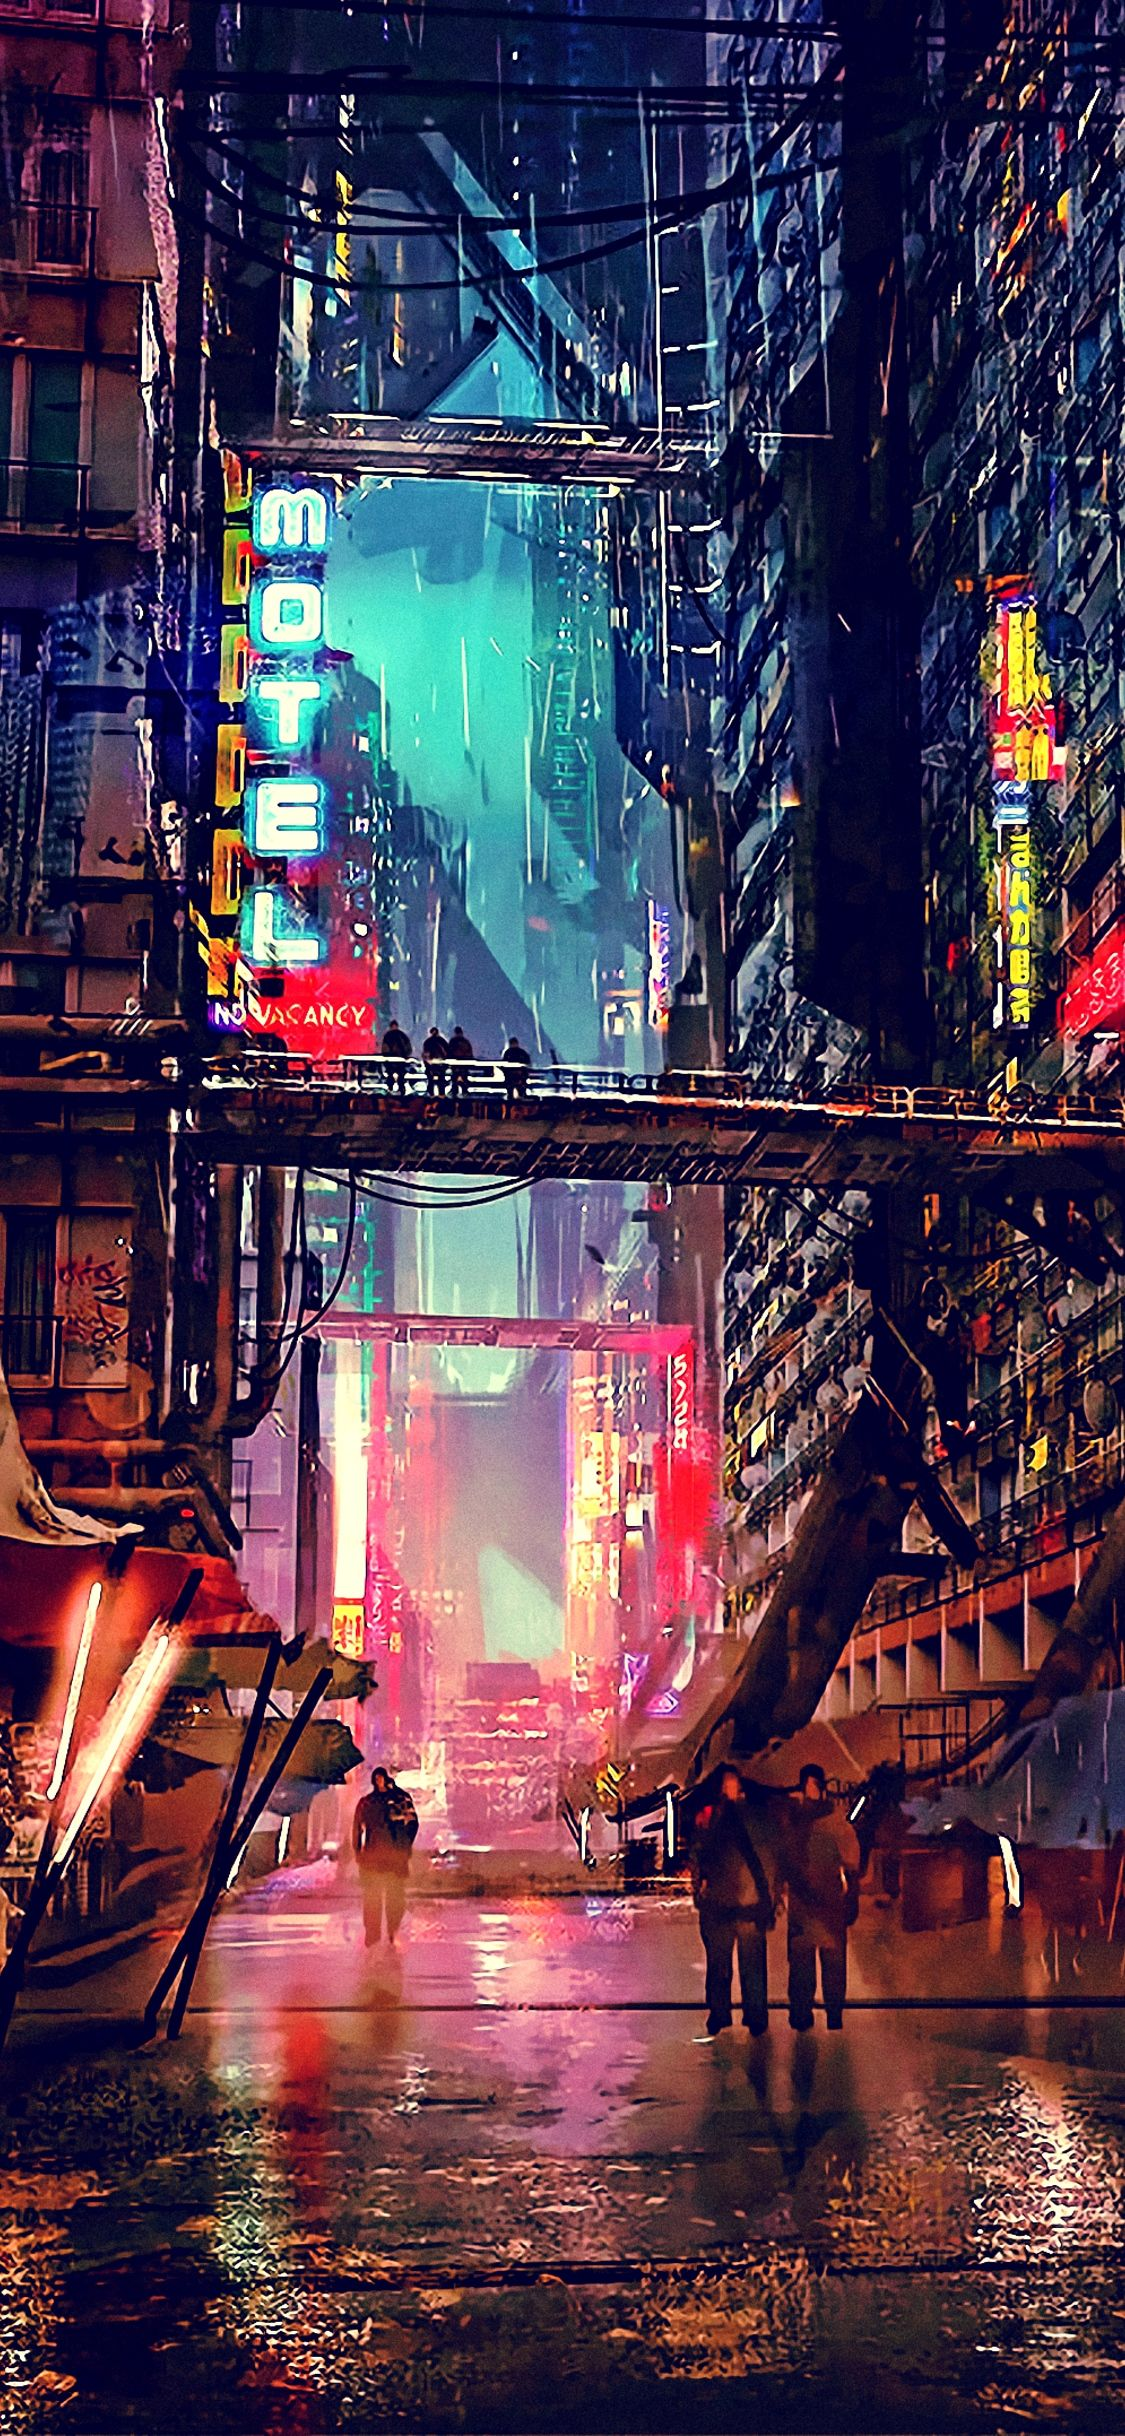 Cyberpunk Wallpaper 4k Iphone Ideas Di 2020 Wallpaper Ponsel Gambar Karakter Kartu